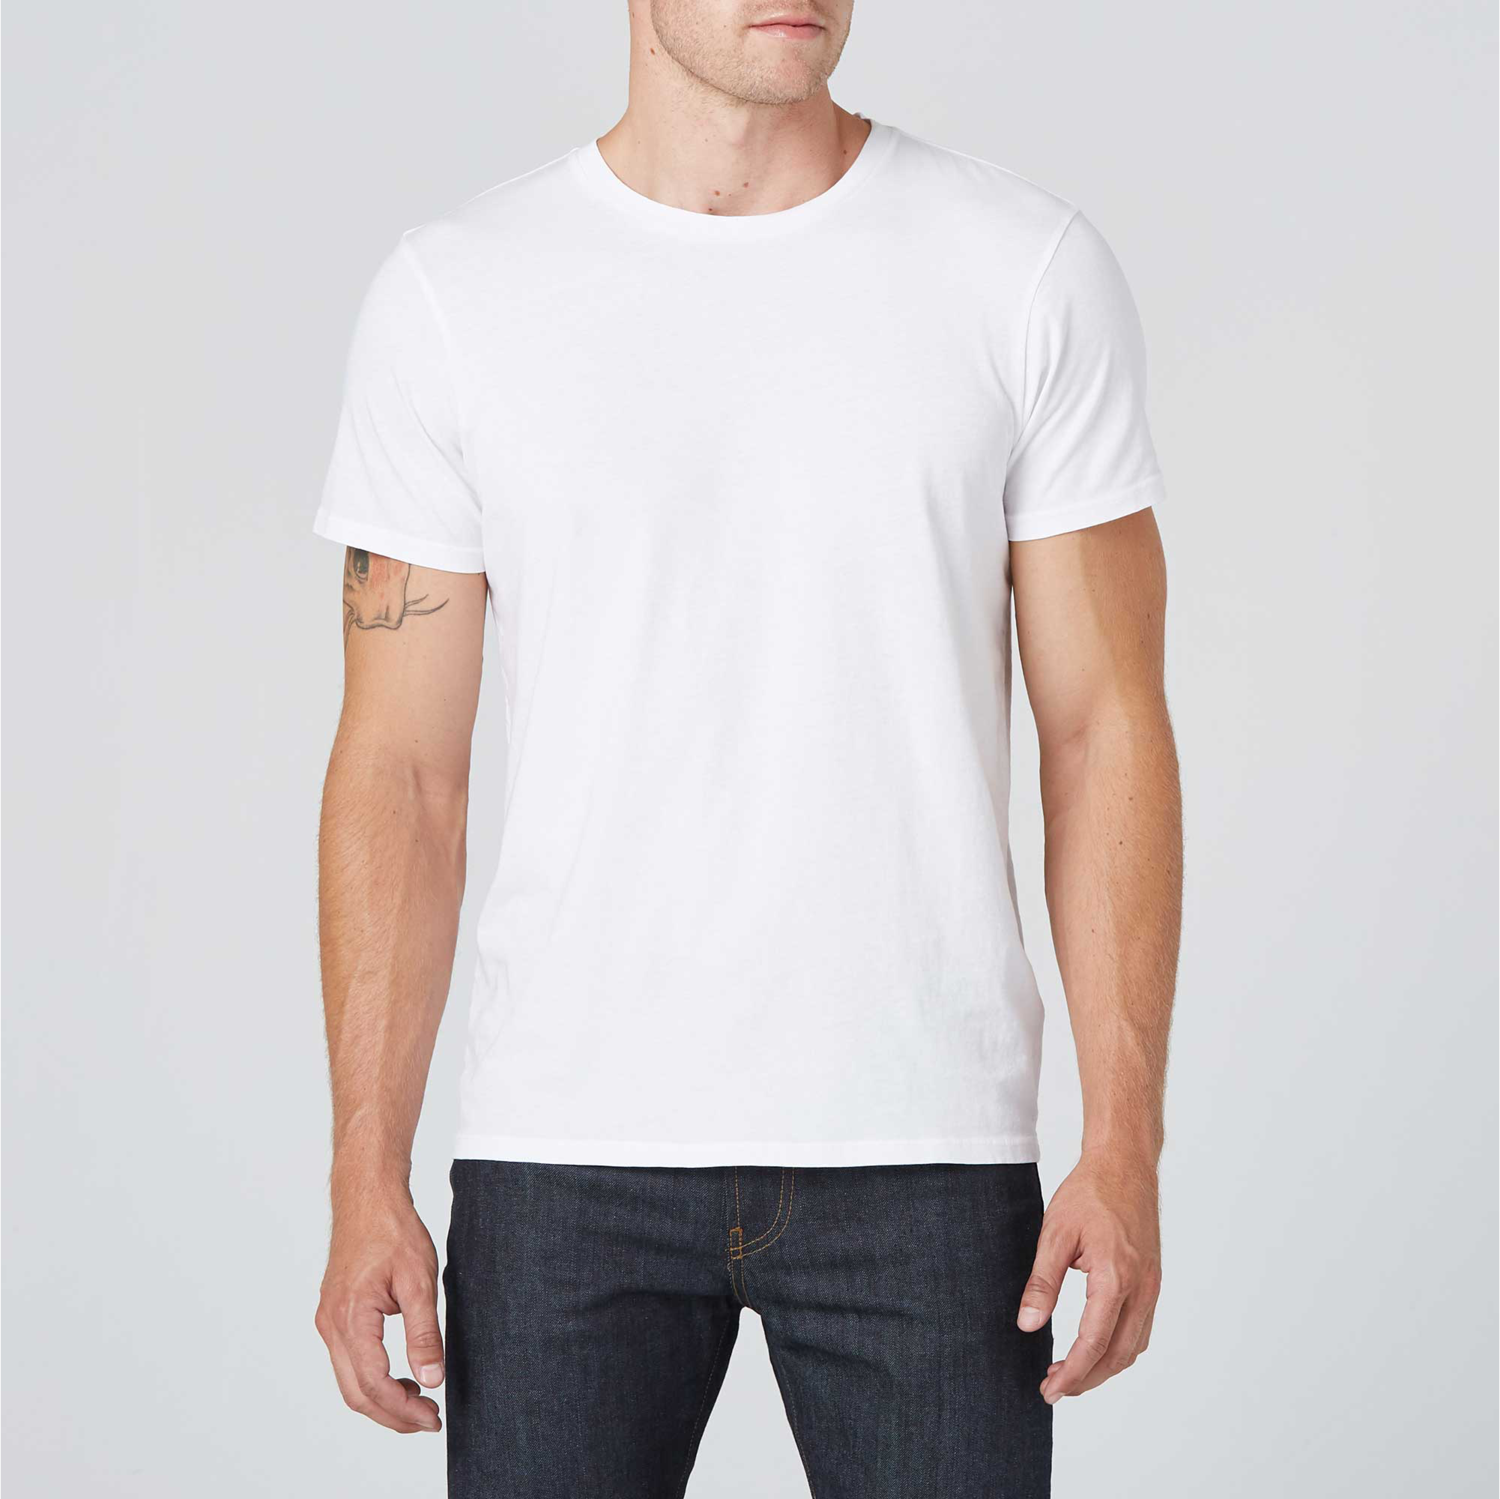 order later better price Mens Crew Neck Tee in White